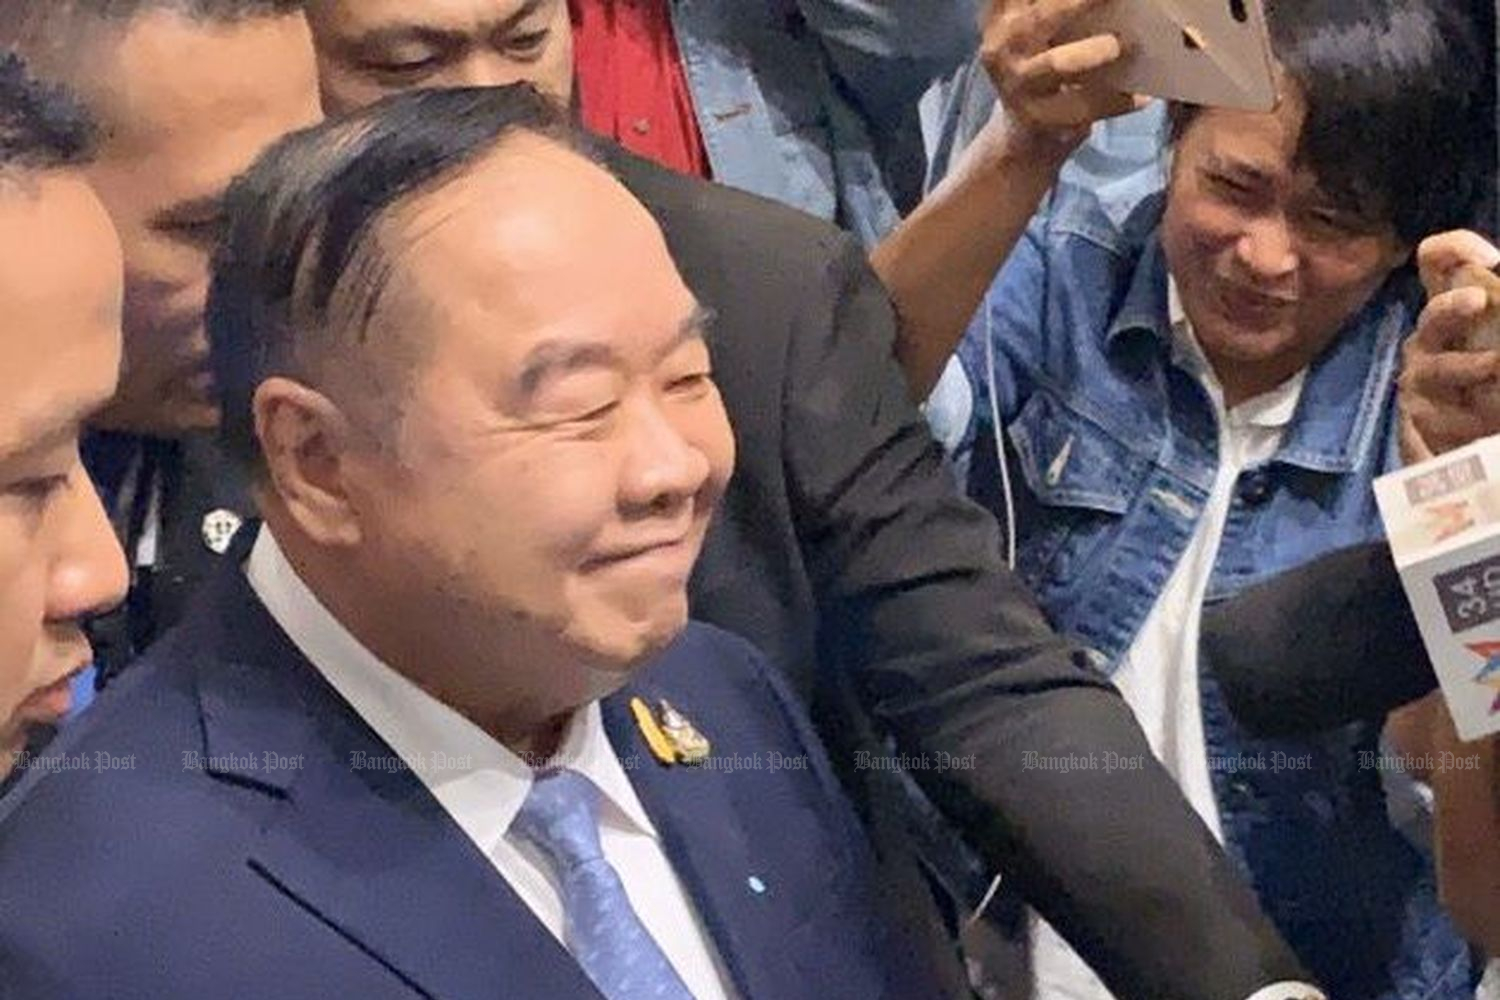 Deputy Prime Minister Prawait Wongsuwon smiles after hearing about the vote results on the no-confidence debate against six ministers on Friday. (Photo by Wasssana Nanuam)